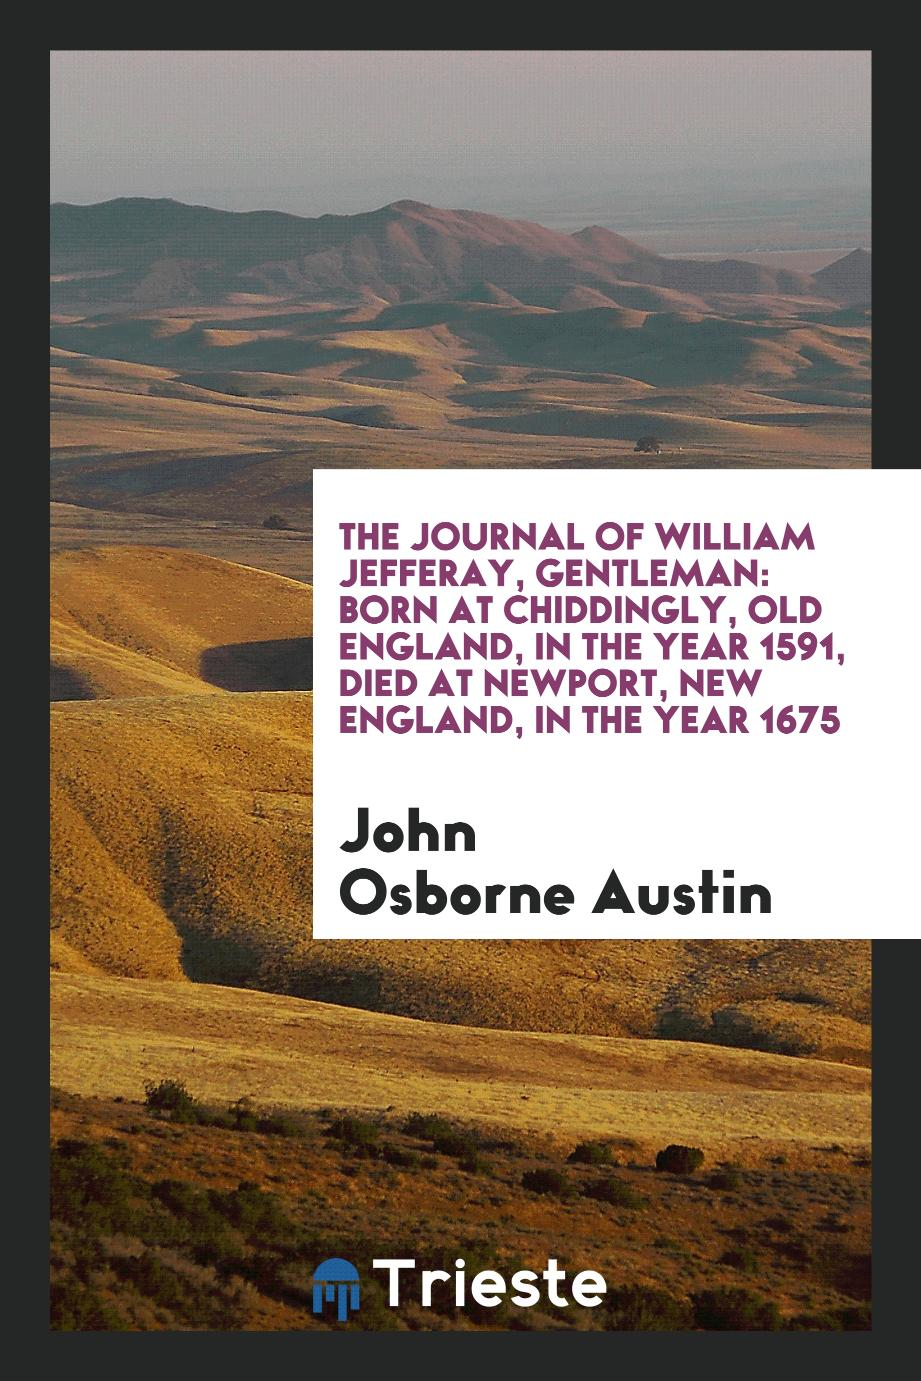 The Journal of William Jefferay, Gentleman: Born at Chiddingly, Old England, in the Year 1591, Died at Newport, New England, in the Year 1675